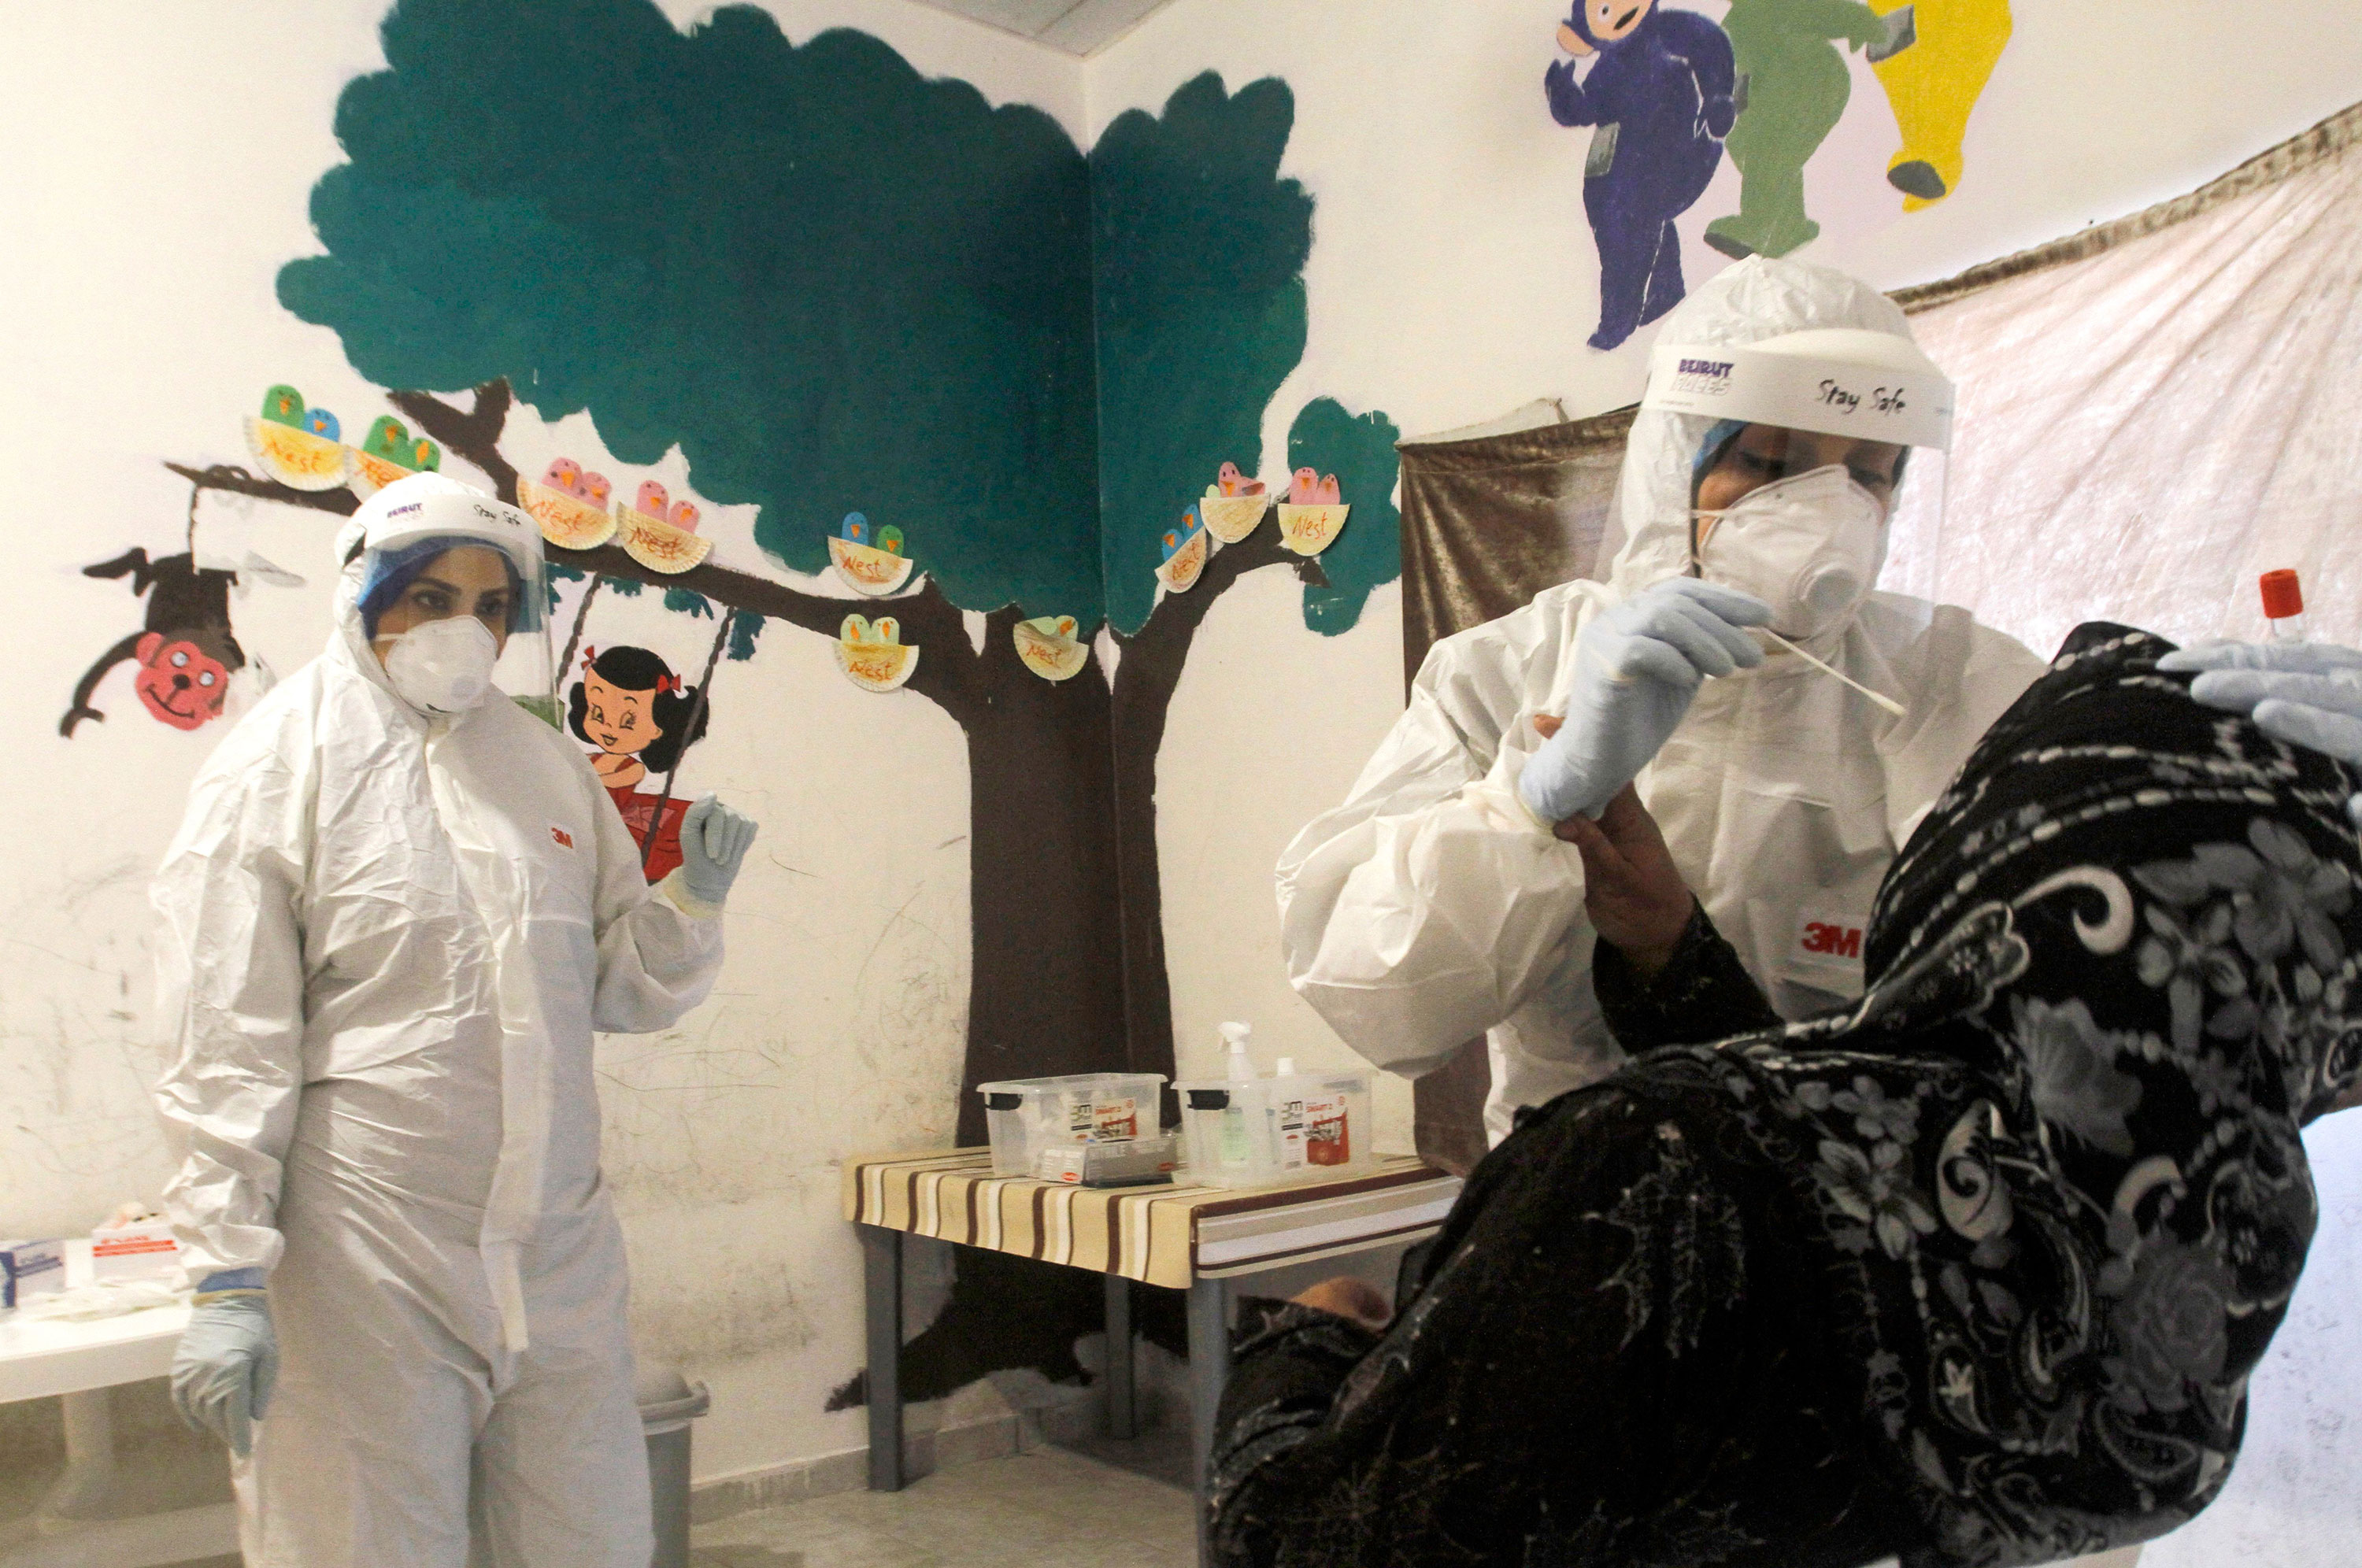 Workers administer a coronavirus test on May 28 in Sidon, Lebanon.